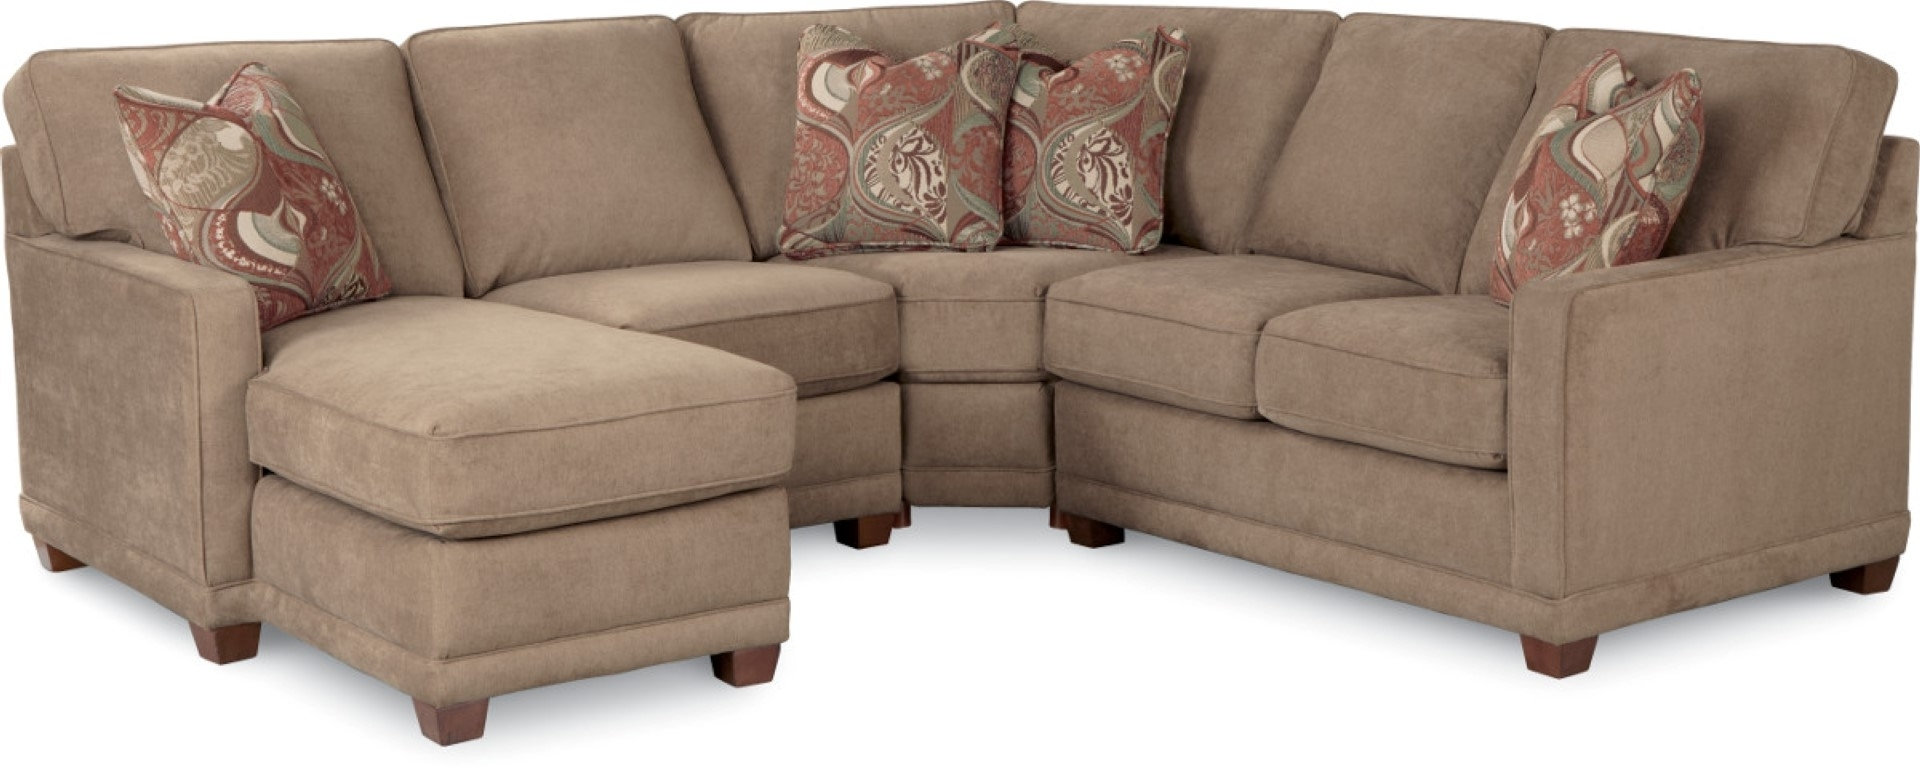 Most Current Kennedy Sectional Sofa – Town & Country Furniture In Dayton Ohio Sectional Sofas (View 13 of 20)